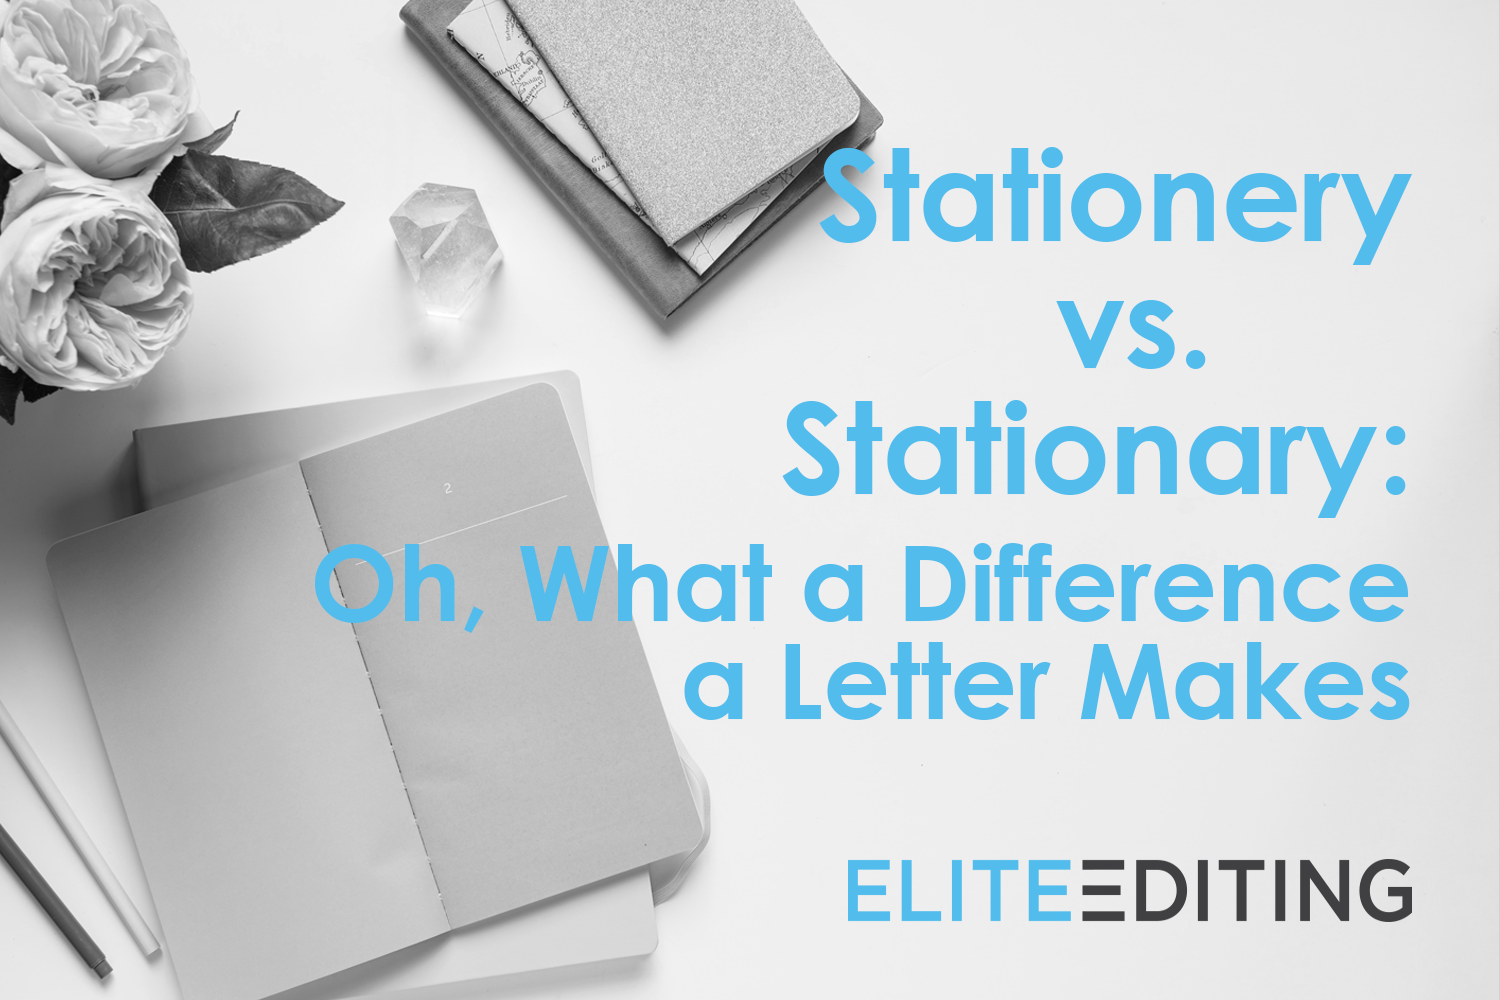 Stationery vs Stationary